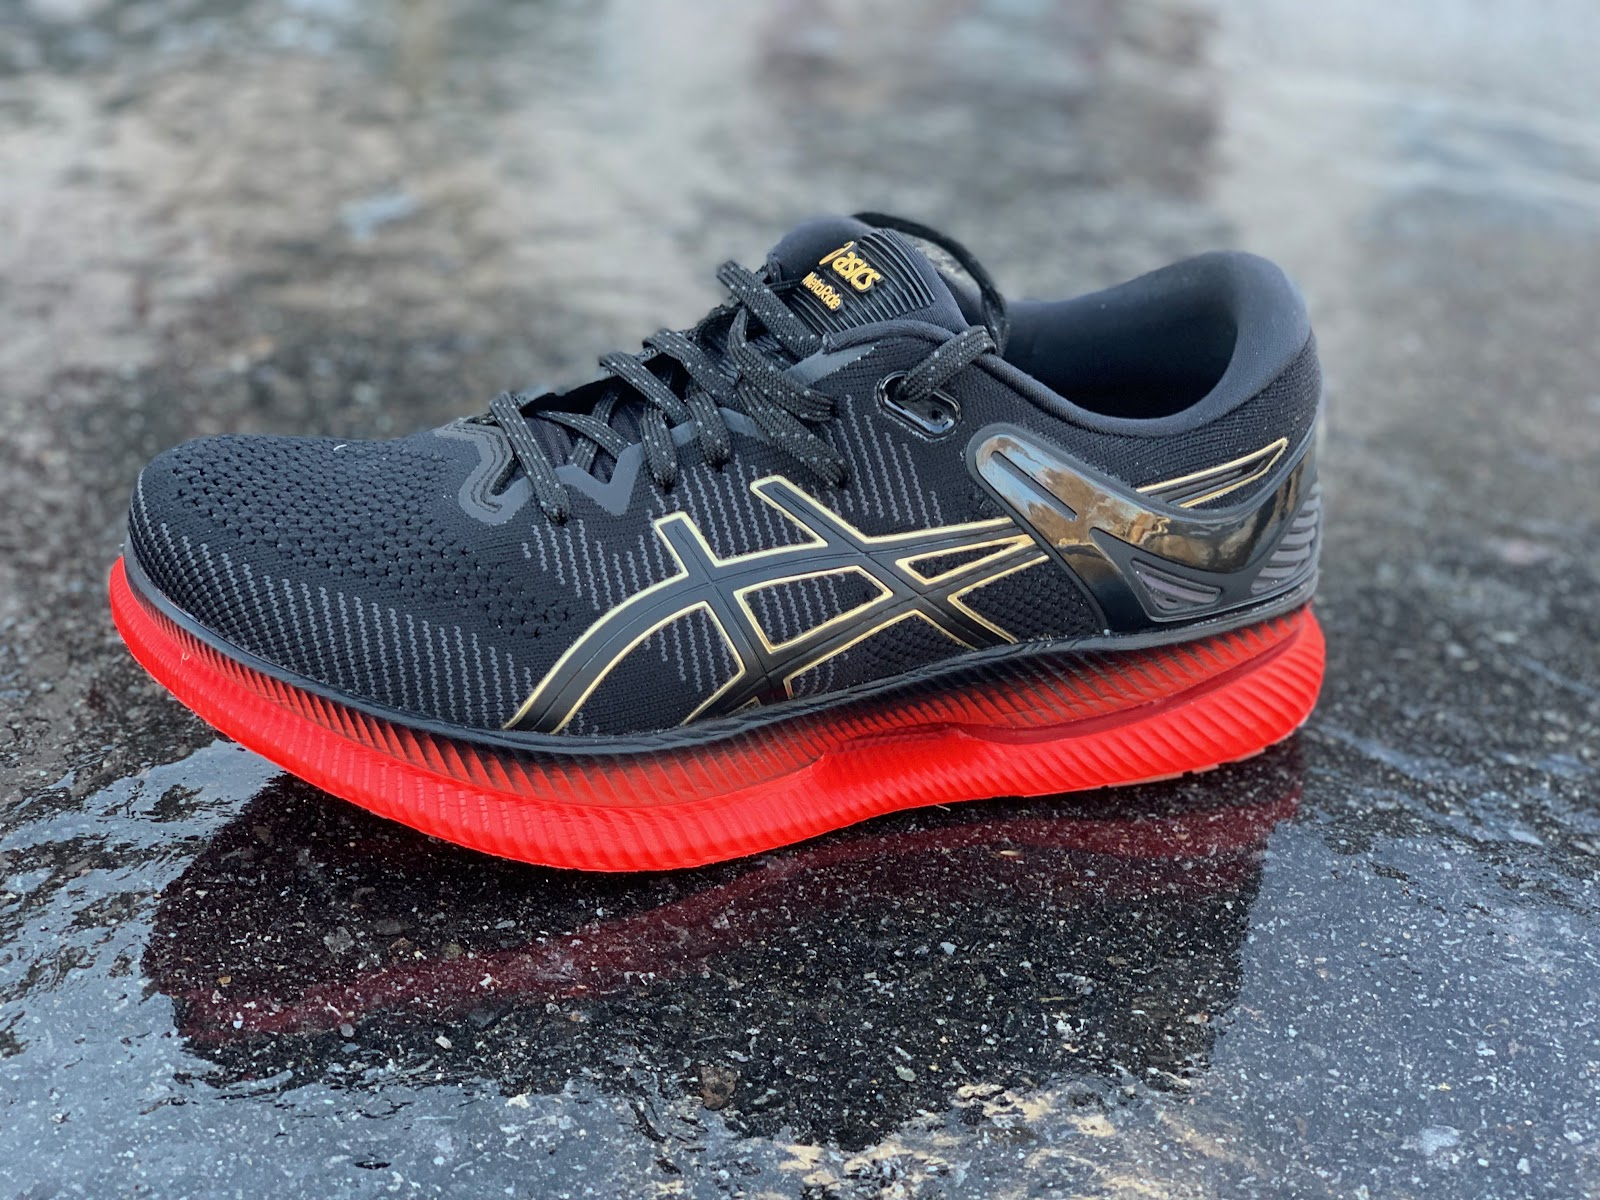 Road Trail Run Asics Metaride In Depth Review Rock N Roll To A Max Cushion Zero Drop Beat